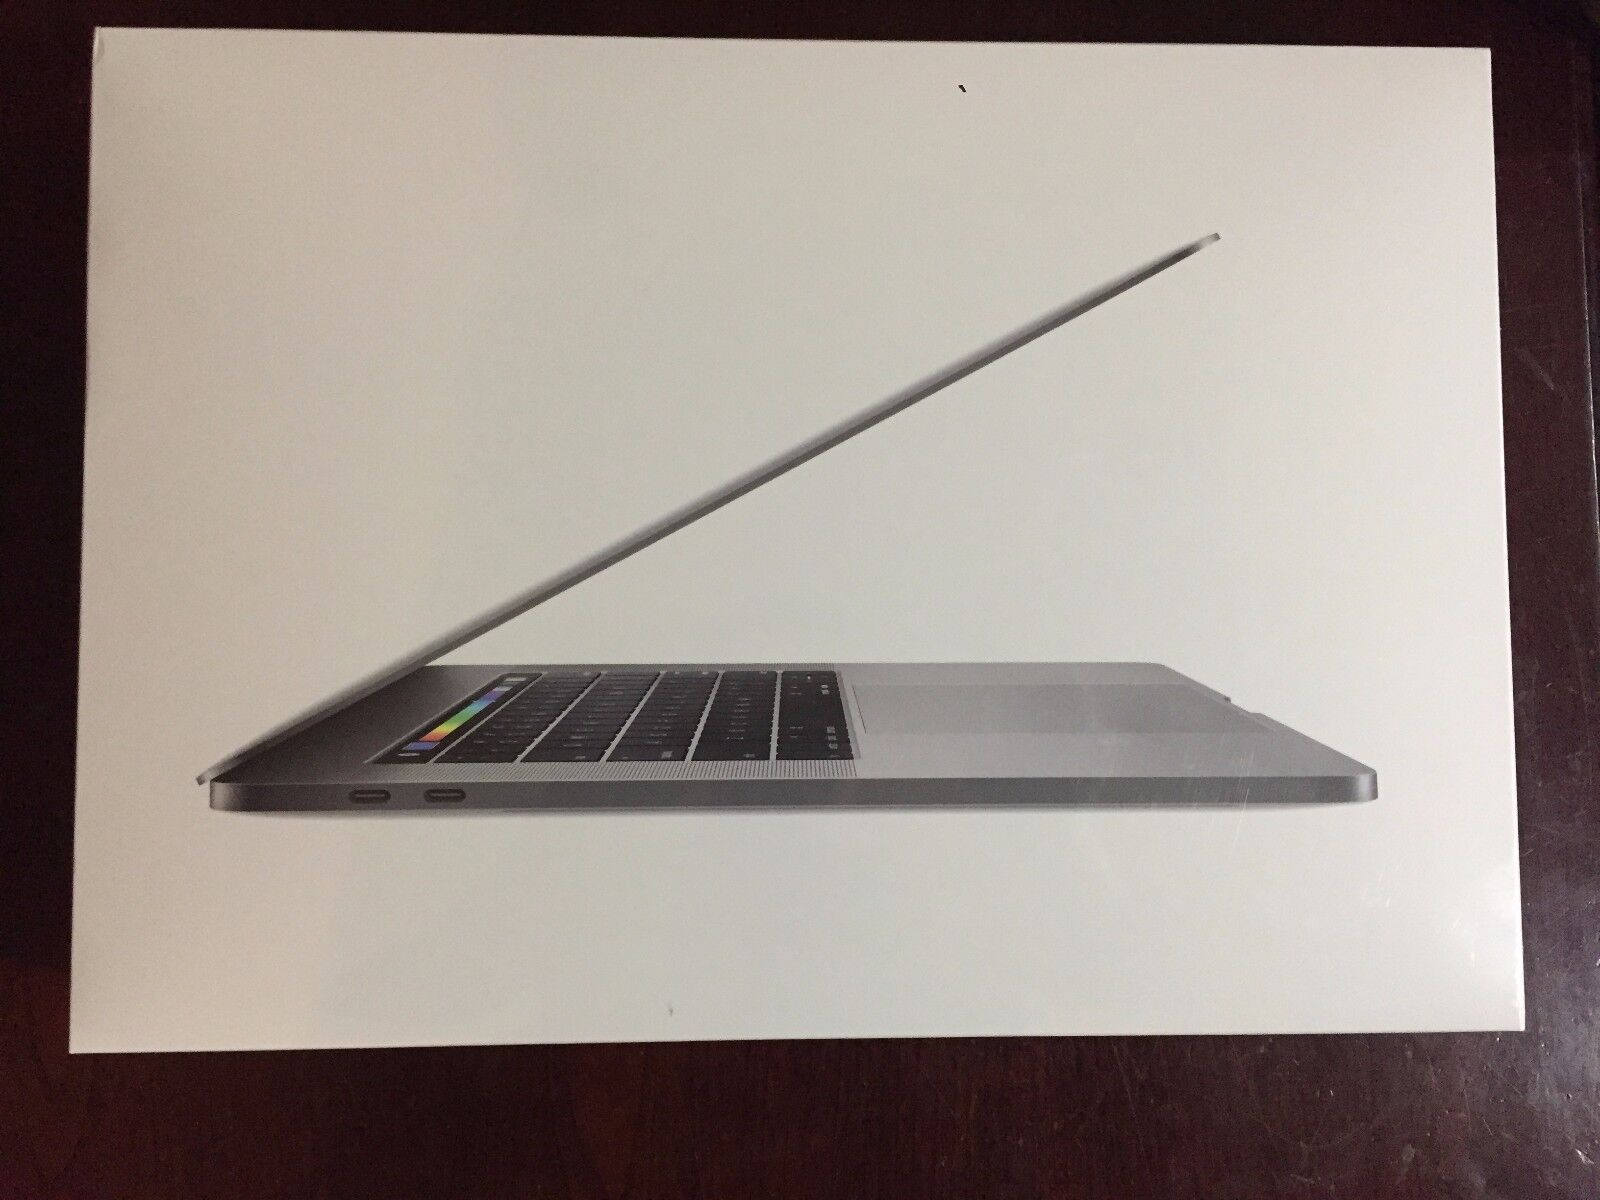 """New Macbook Pro 15"""" Space Gray 2.8 GHz i7 16GB 512GB  Touch Bar 2017 +Apple Care"""